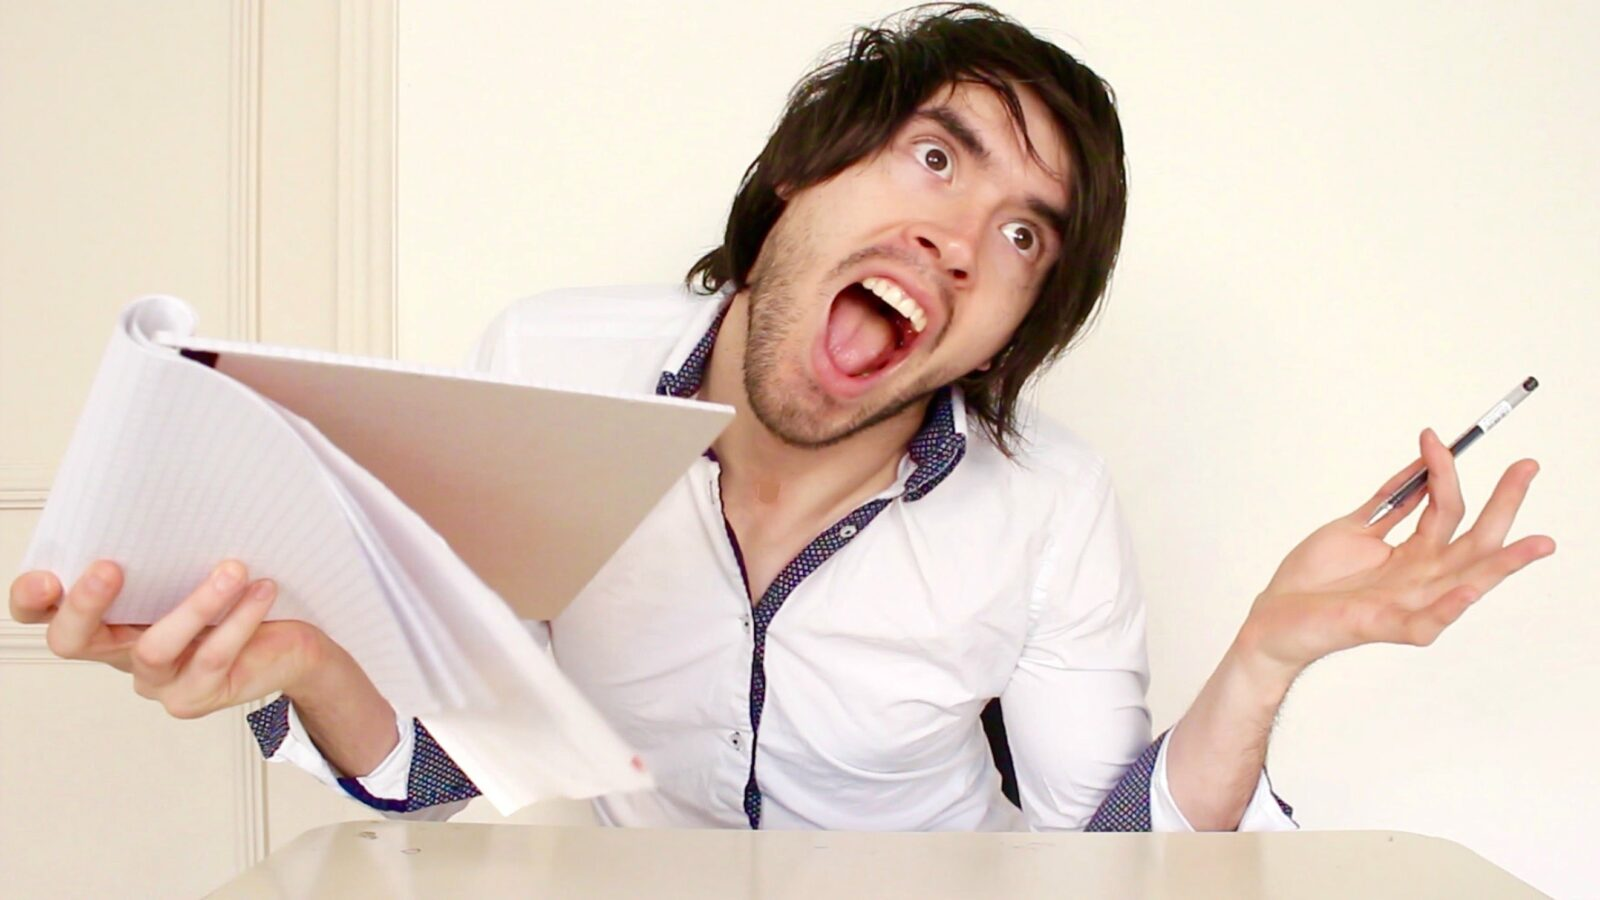 HolaSoyGerman free download